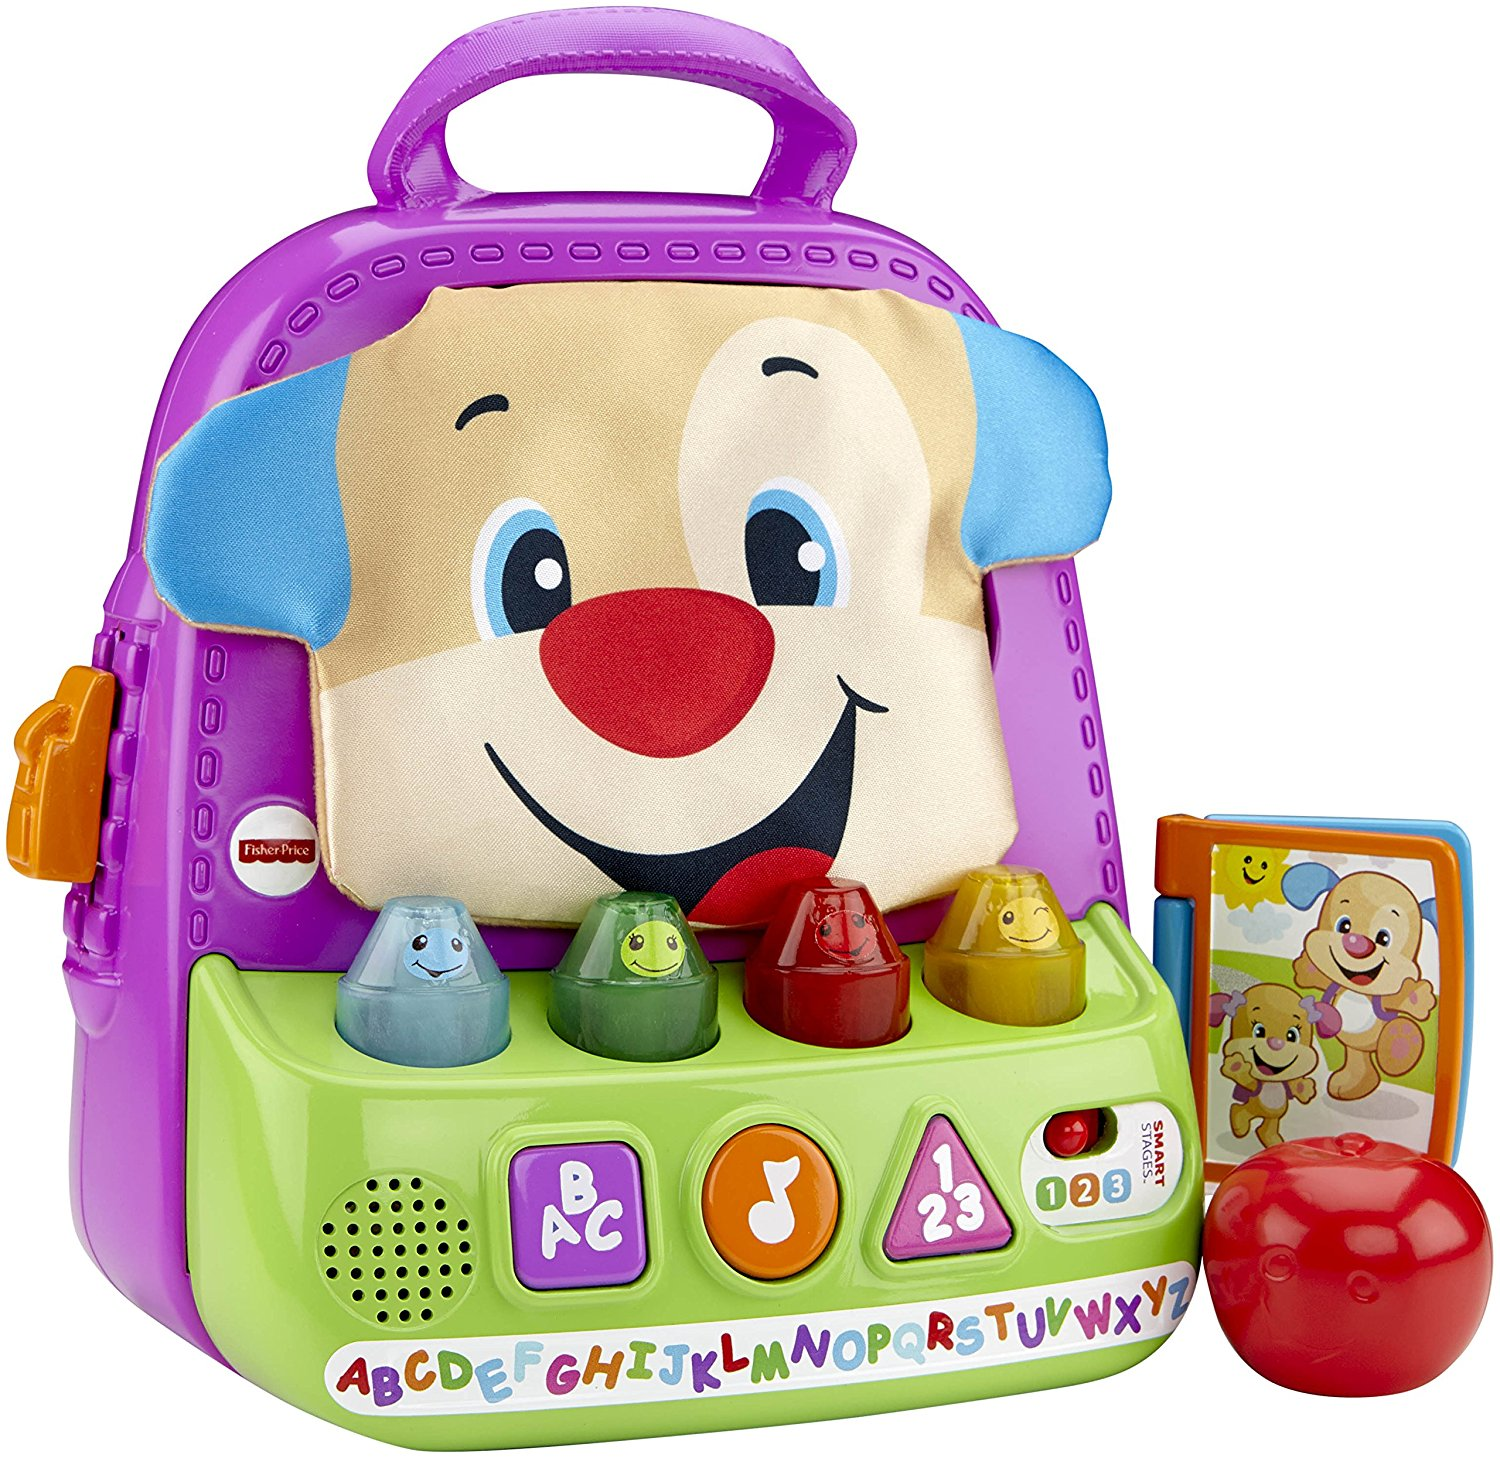 Fisher Price - Laugh & Learn Smart Stages Teaching Tote - Matcgv03 - Mattel - Bx-a4-12-t48